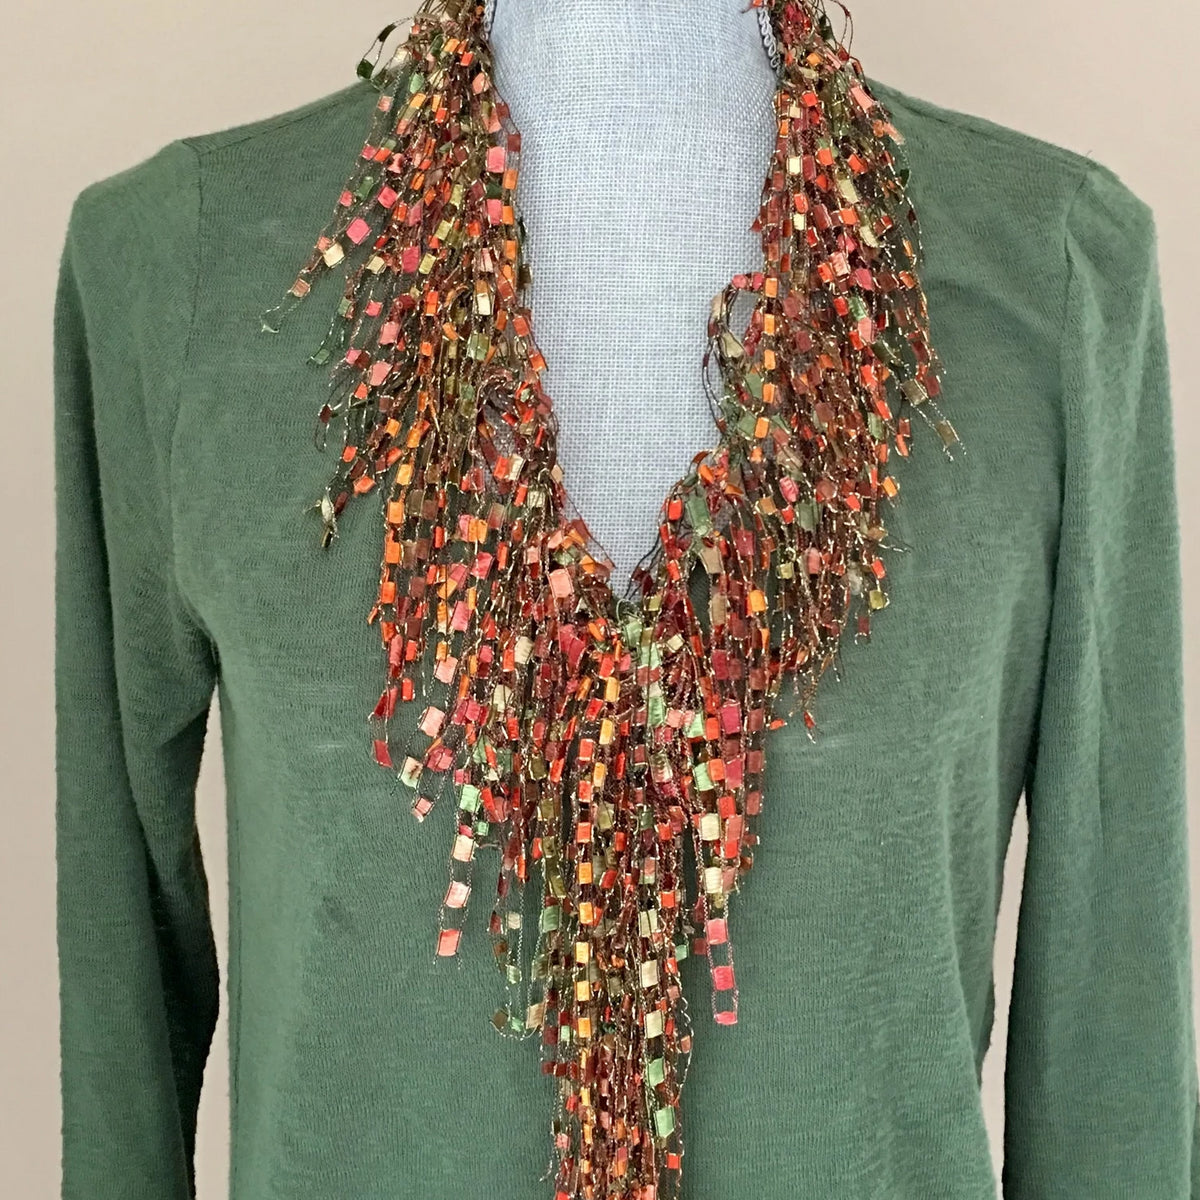 Orange and Green Infinity Scarf Necklace - Coral Jade GemLace Scarf